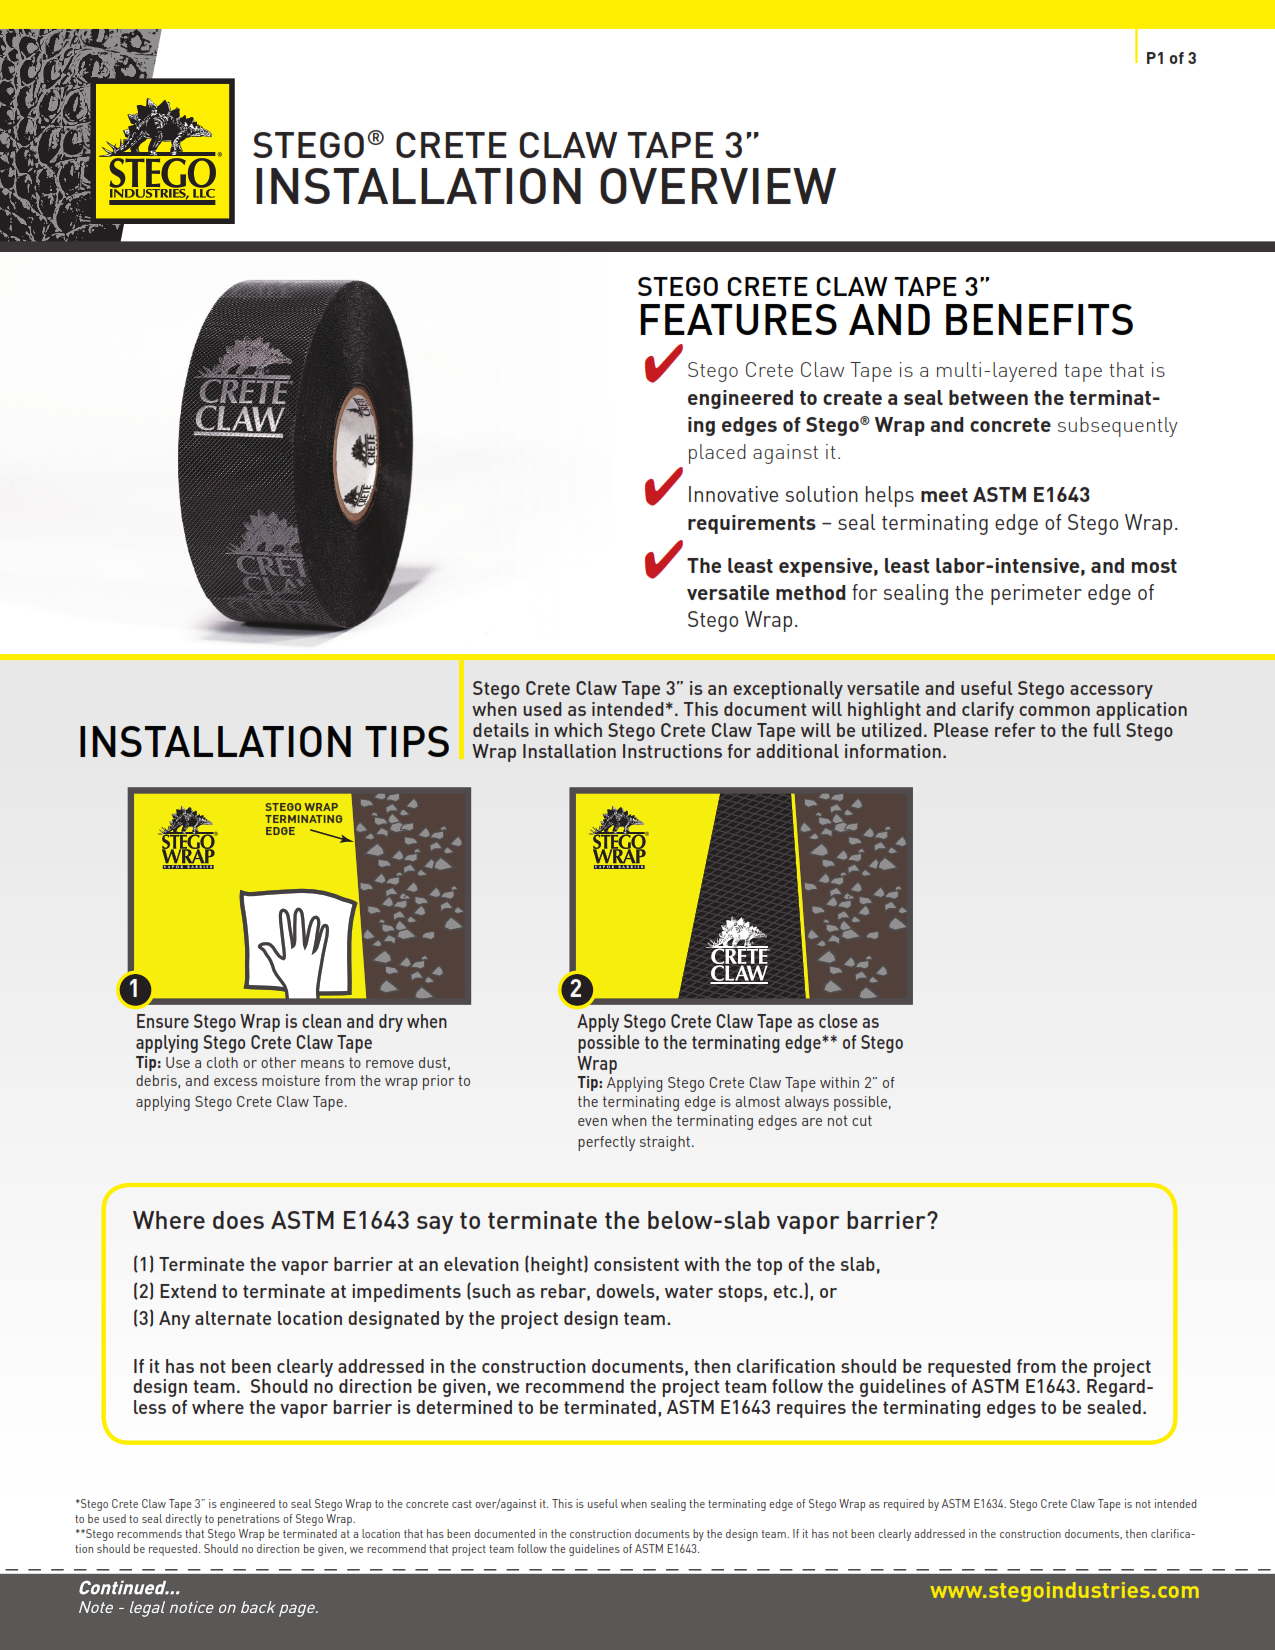 Stego-Crete-Claw-Tape-3-Inch-Installation-Overview